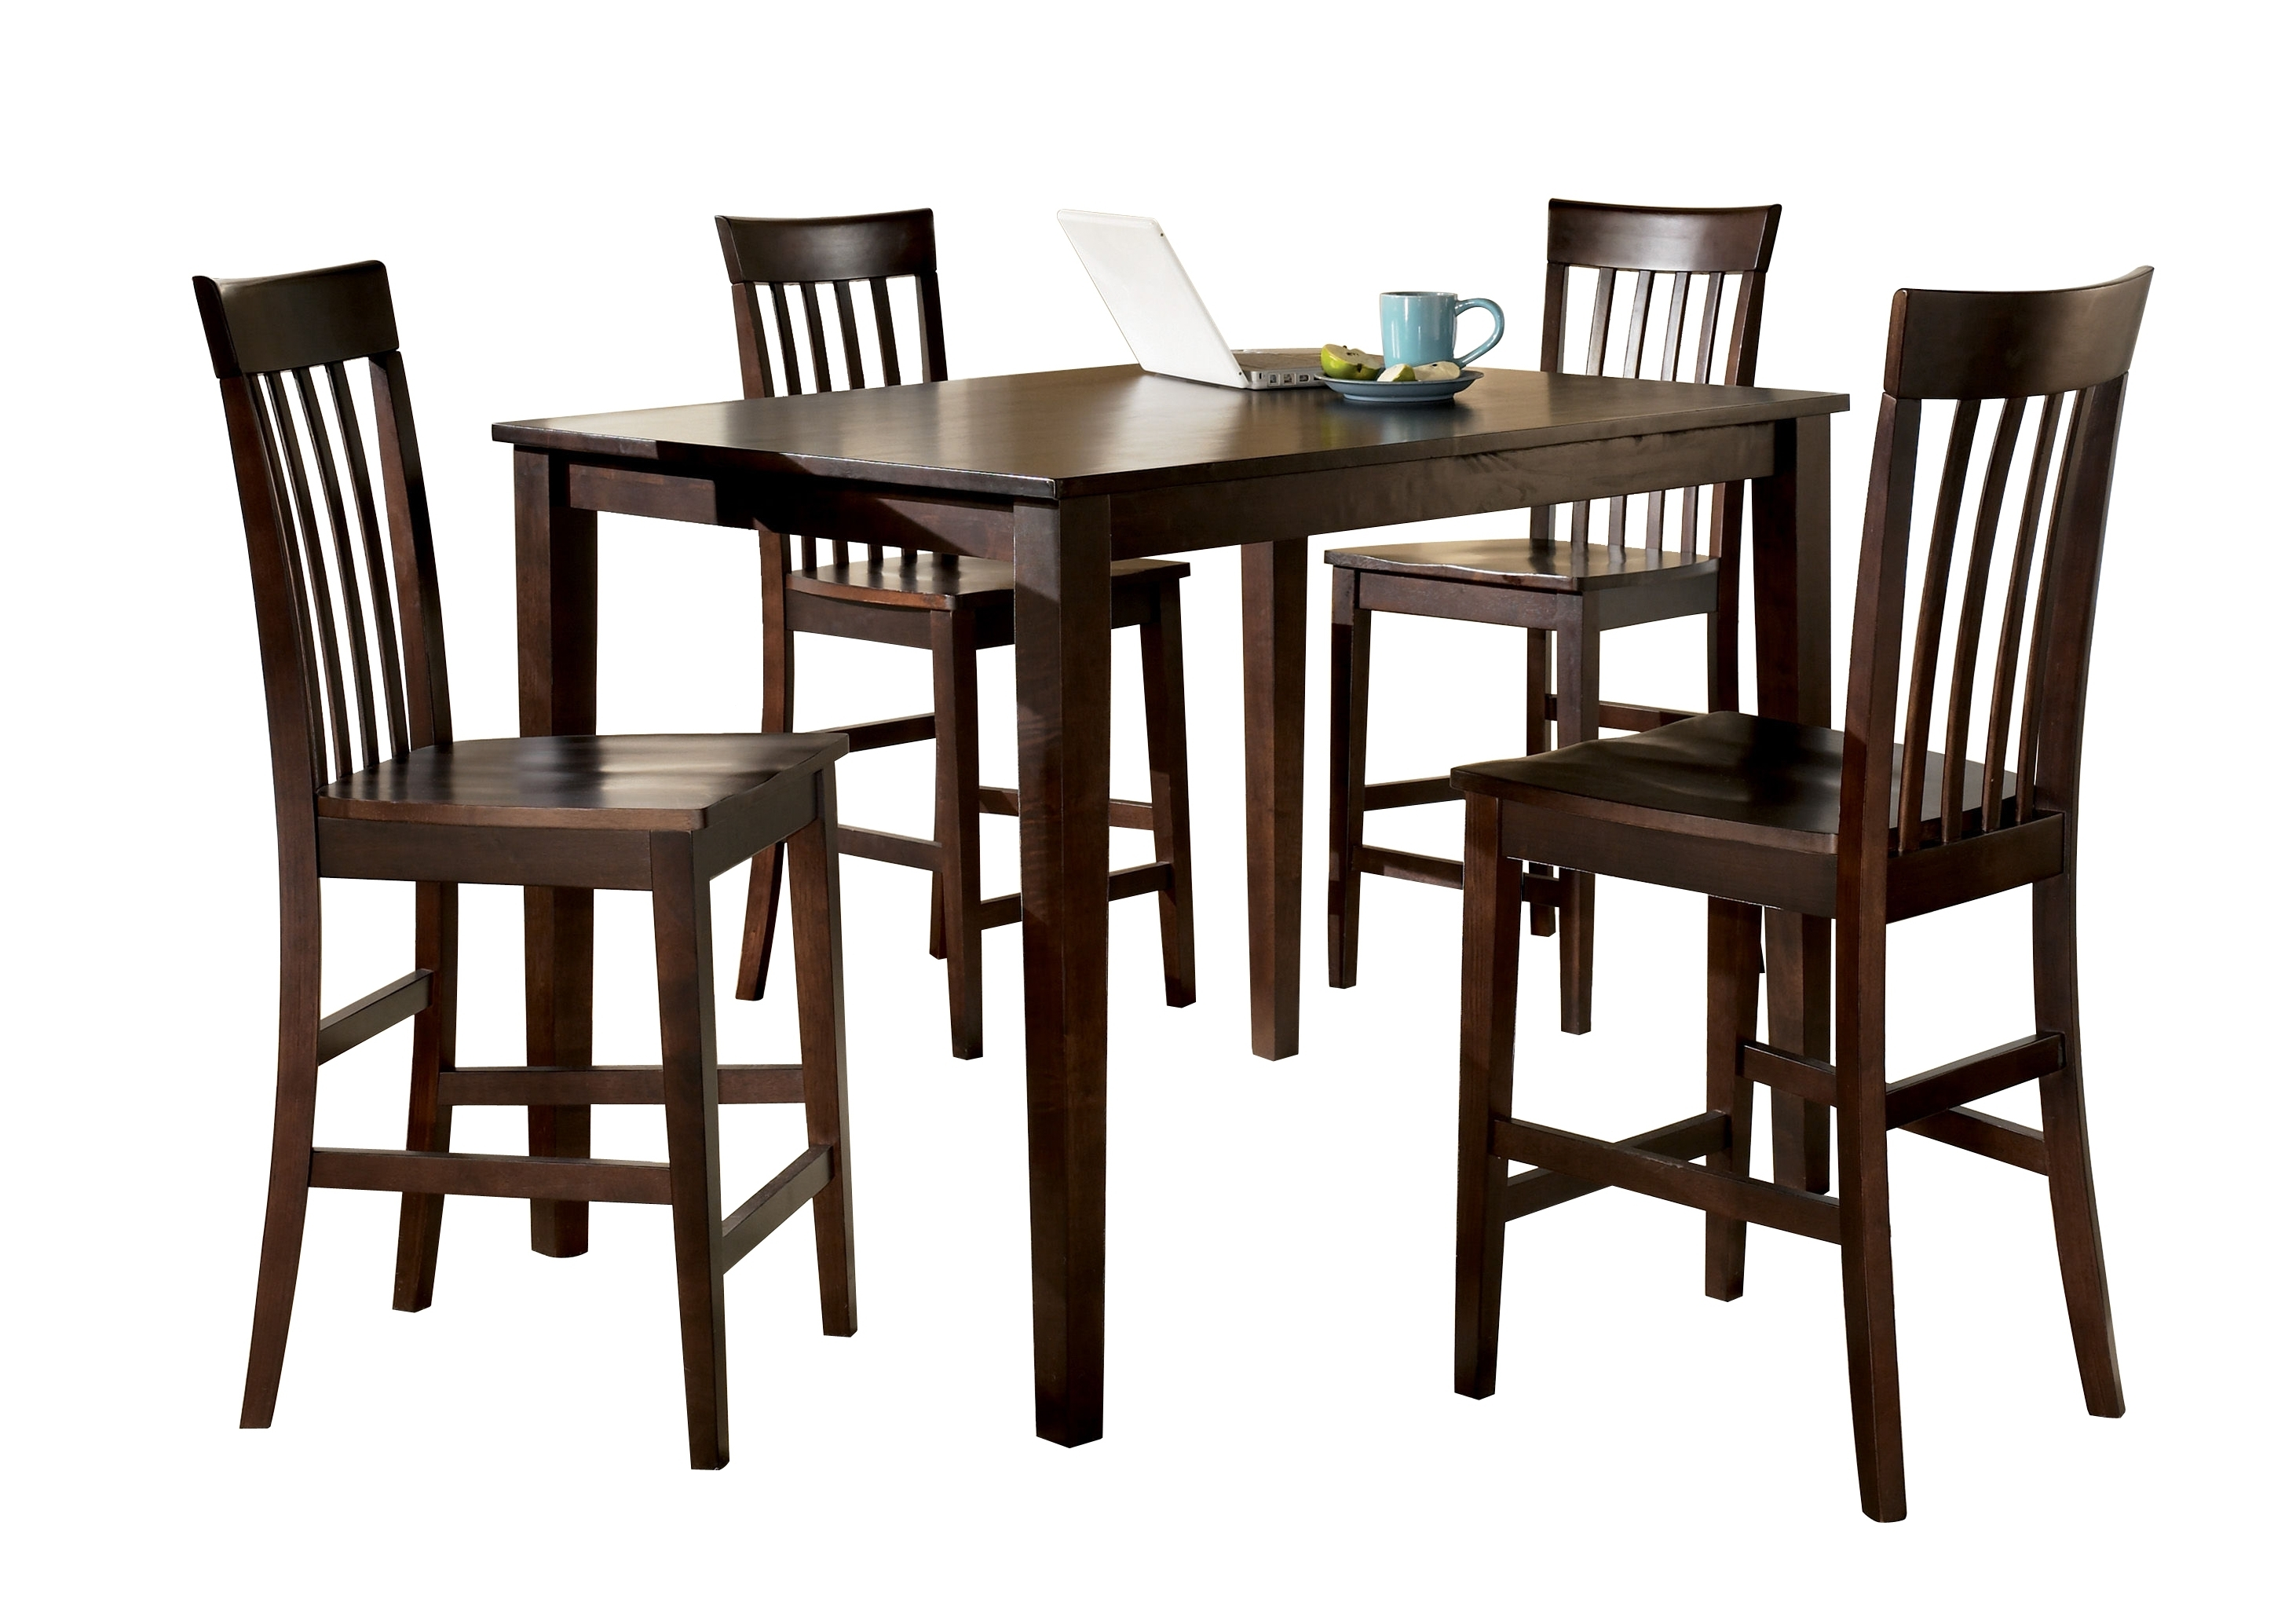 Ashley Furniture Hyland 5Pc Counter Table Set | The Classy Home Throughout Most Recently Released Hyland 5 Piece Counter Sets With Bench (View 8 of 20)